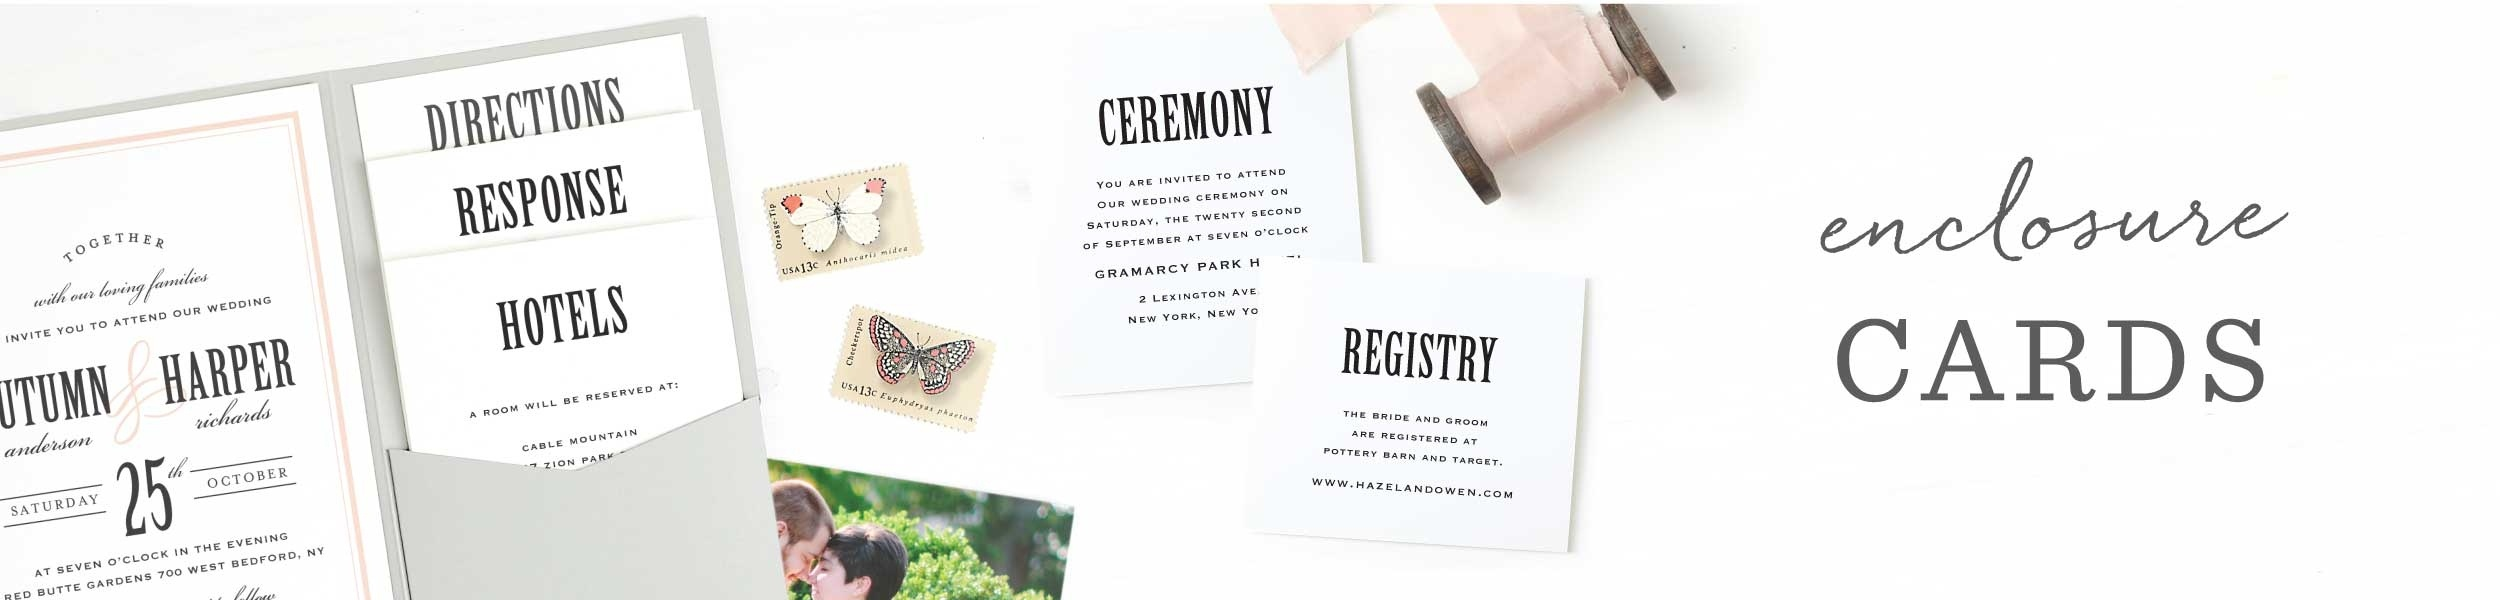 Customizable Wedding Registry Cards -Basic Invite - Free Printable Registry Cards